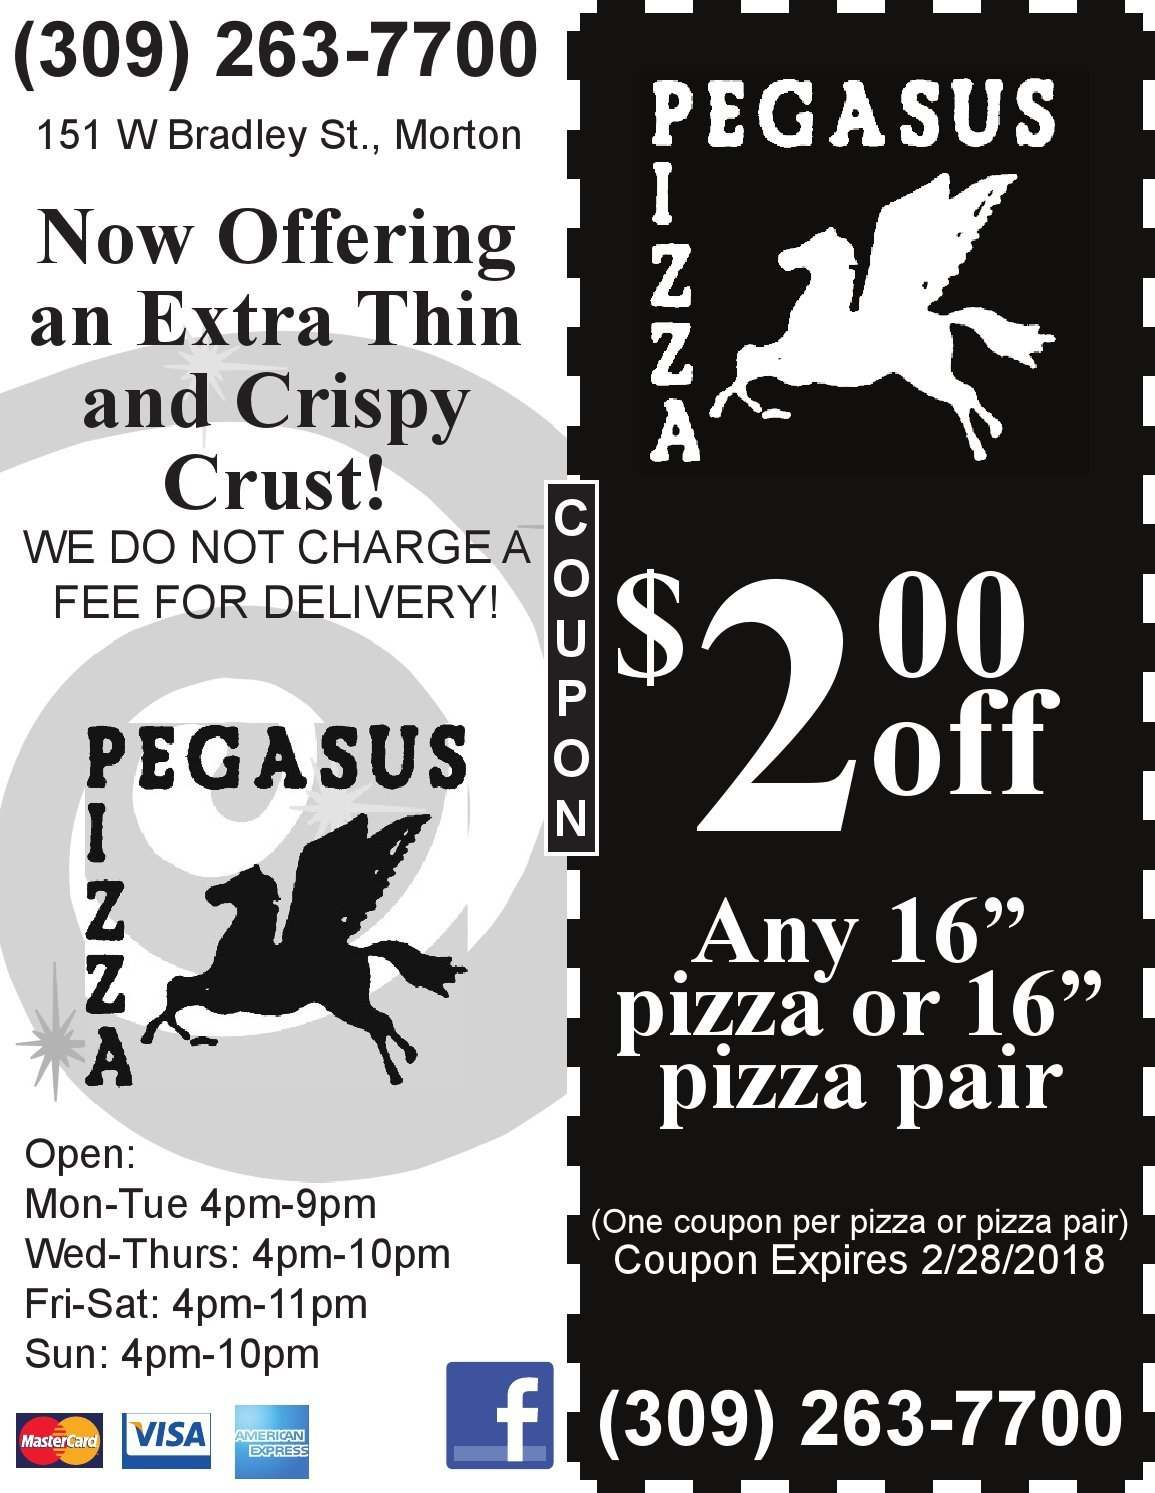 Pegasus Pizza $ off pizza or pair Morton, IL